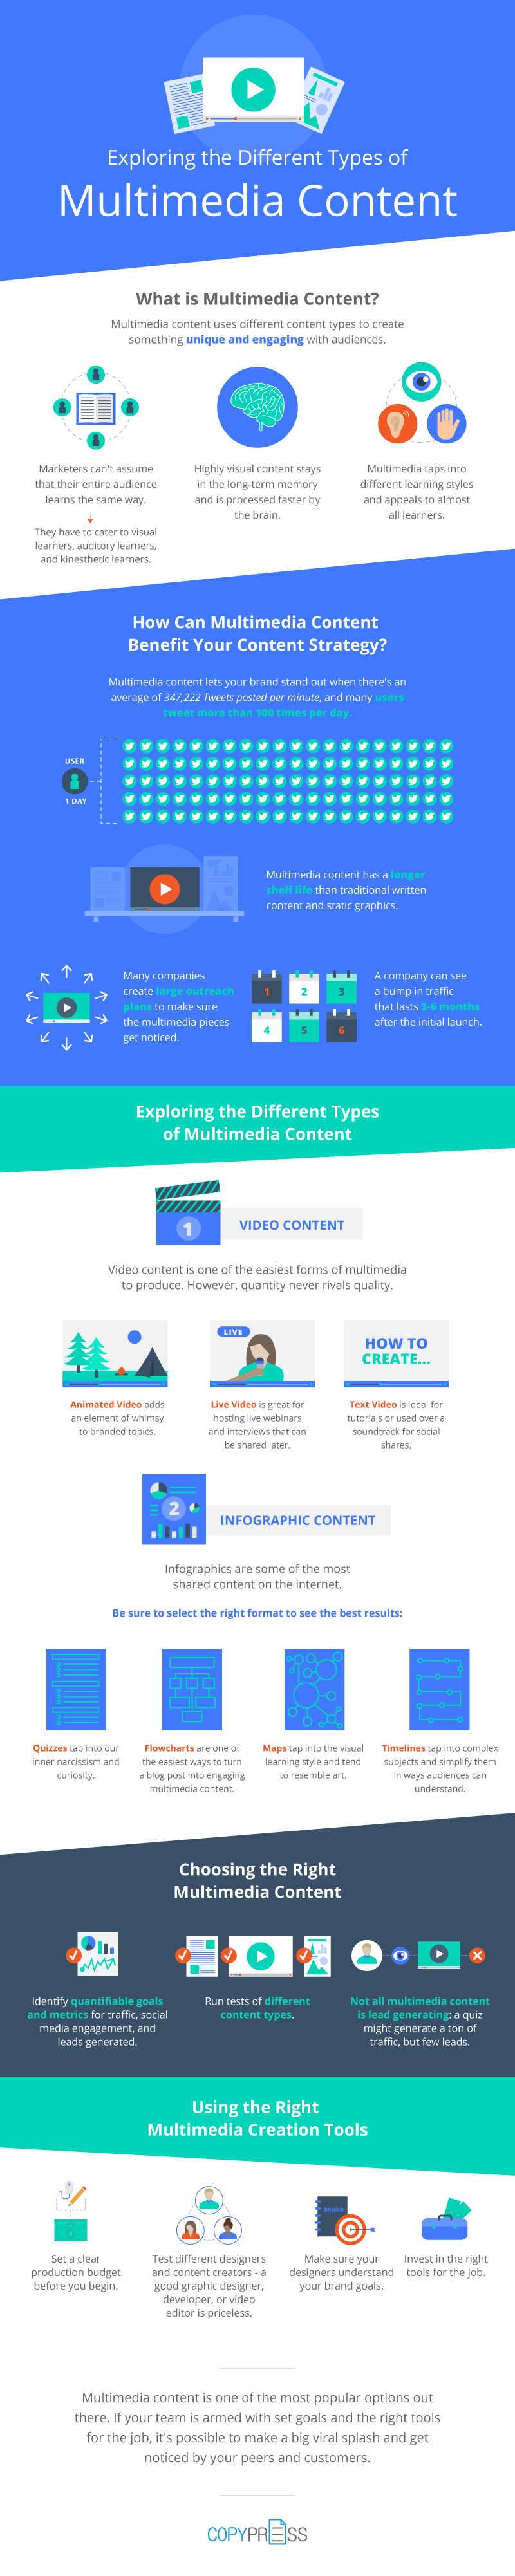 Why You Should Care About Multimedia Content #Infographic